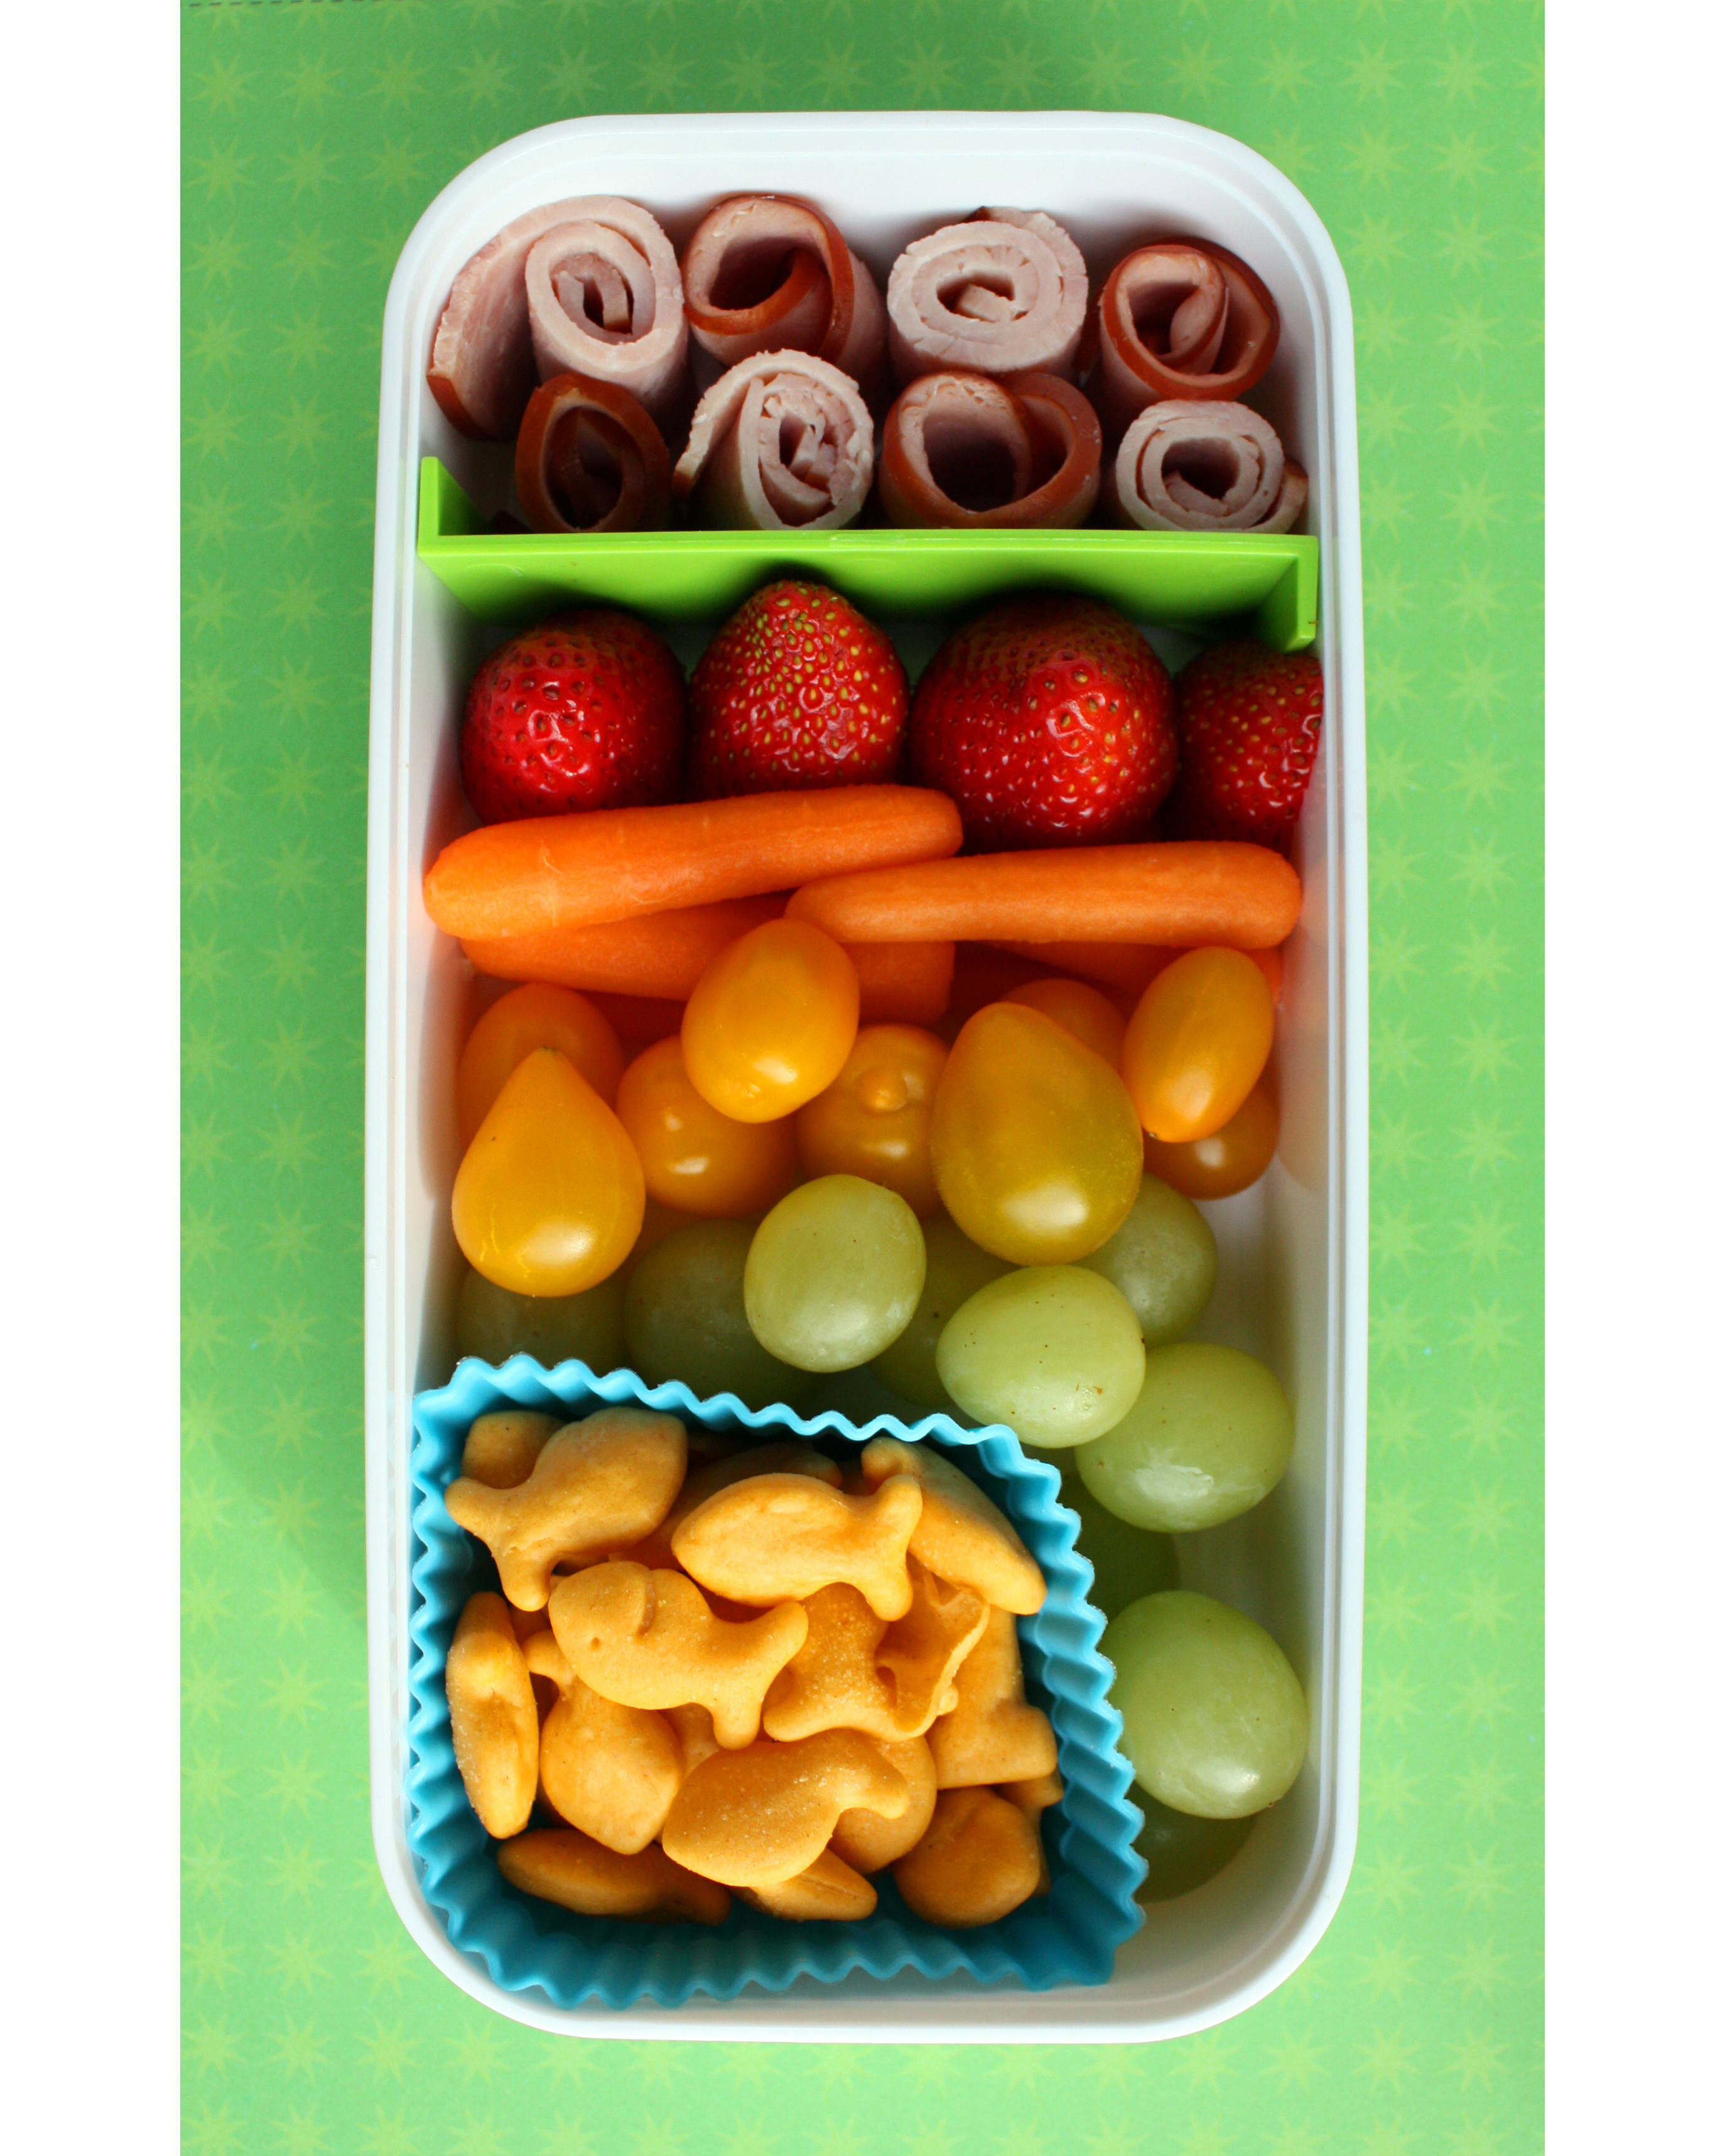 bento box rainbow goldfish grapes carrots